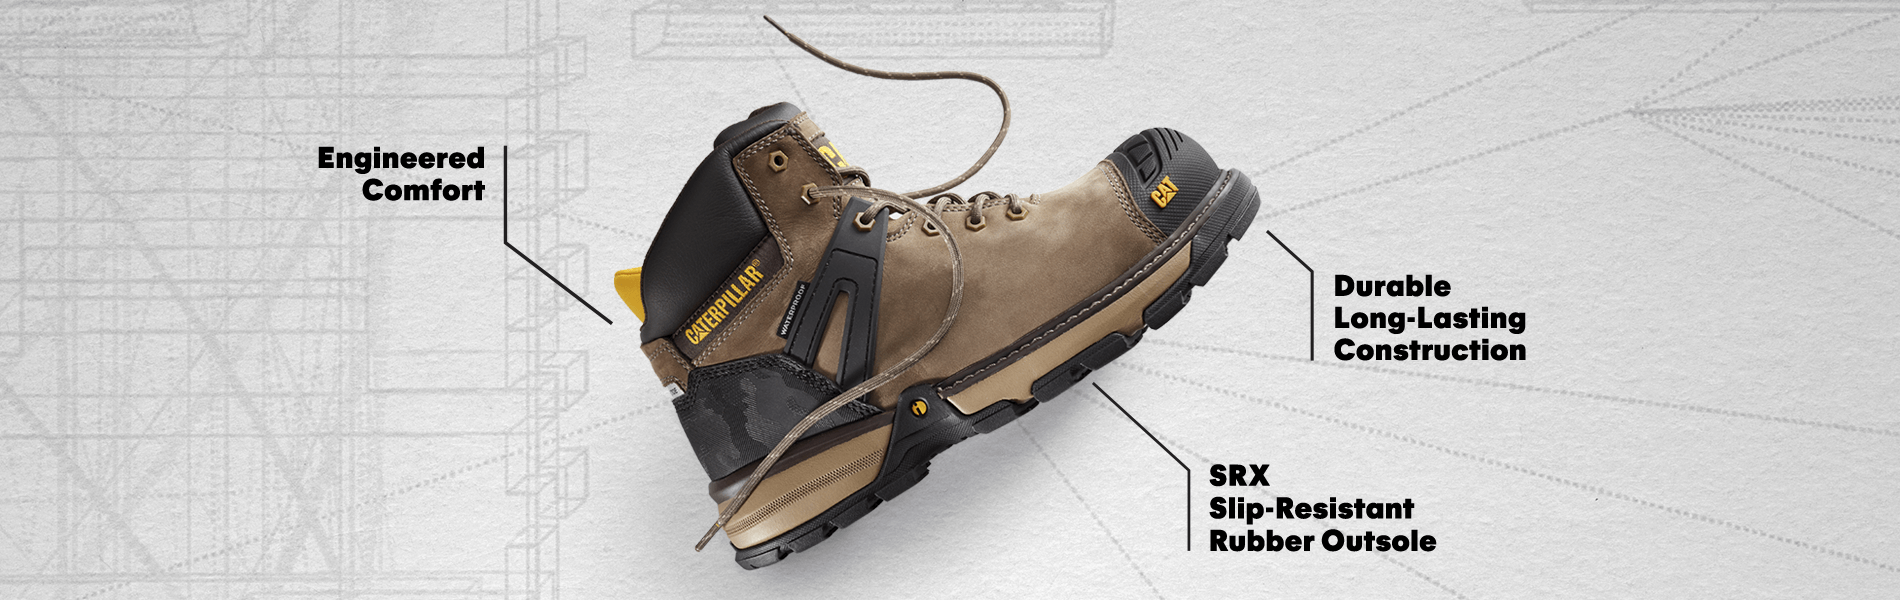 Engineered Comfort, durable long-lasting construction and SRX slip-resistant rubber outsole.